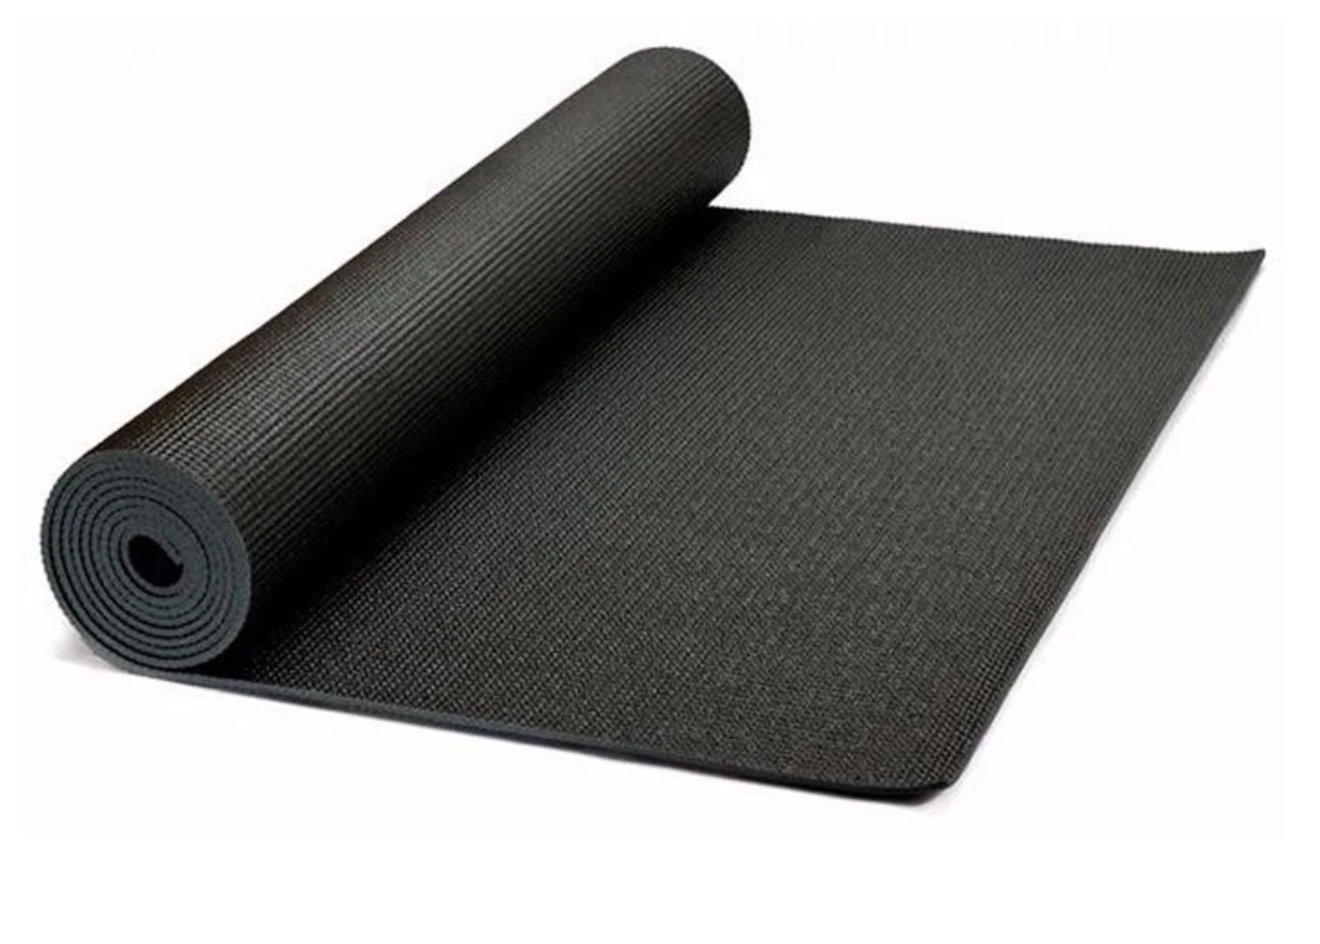 Premium Black Yoga Mat - Studio Quality, High Density